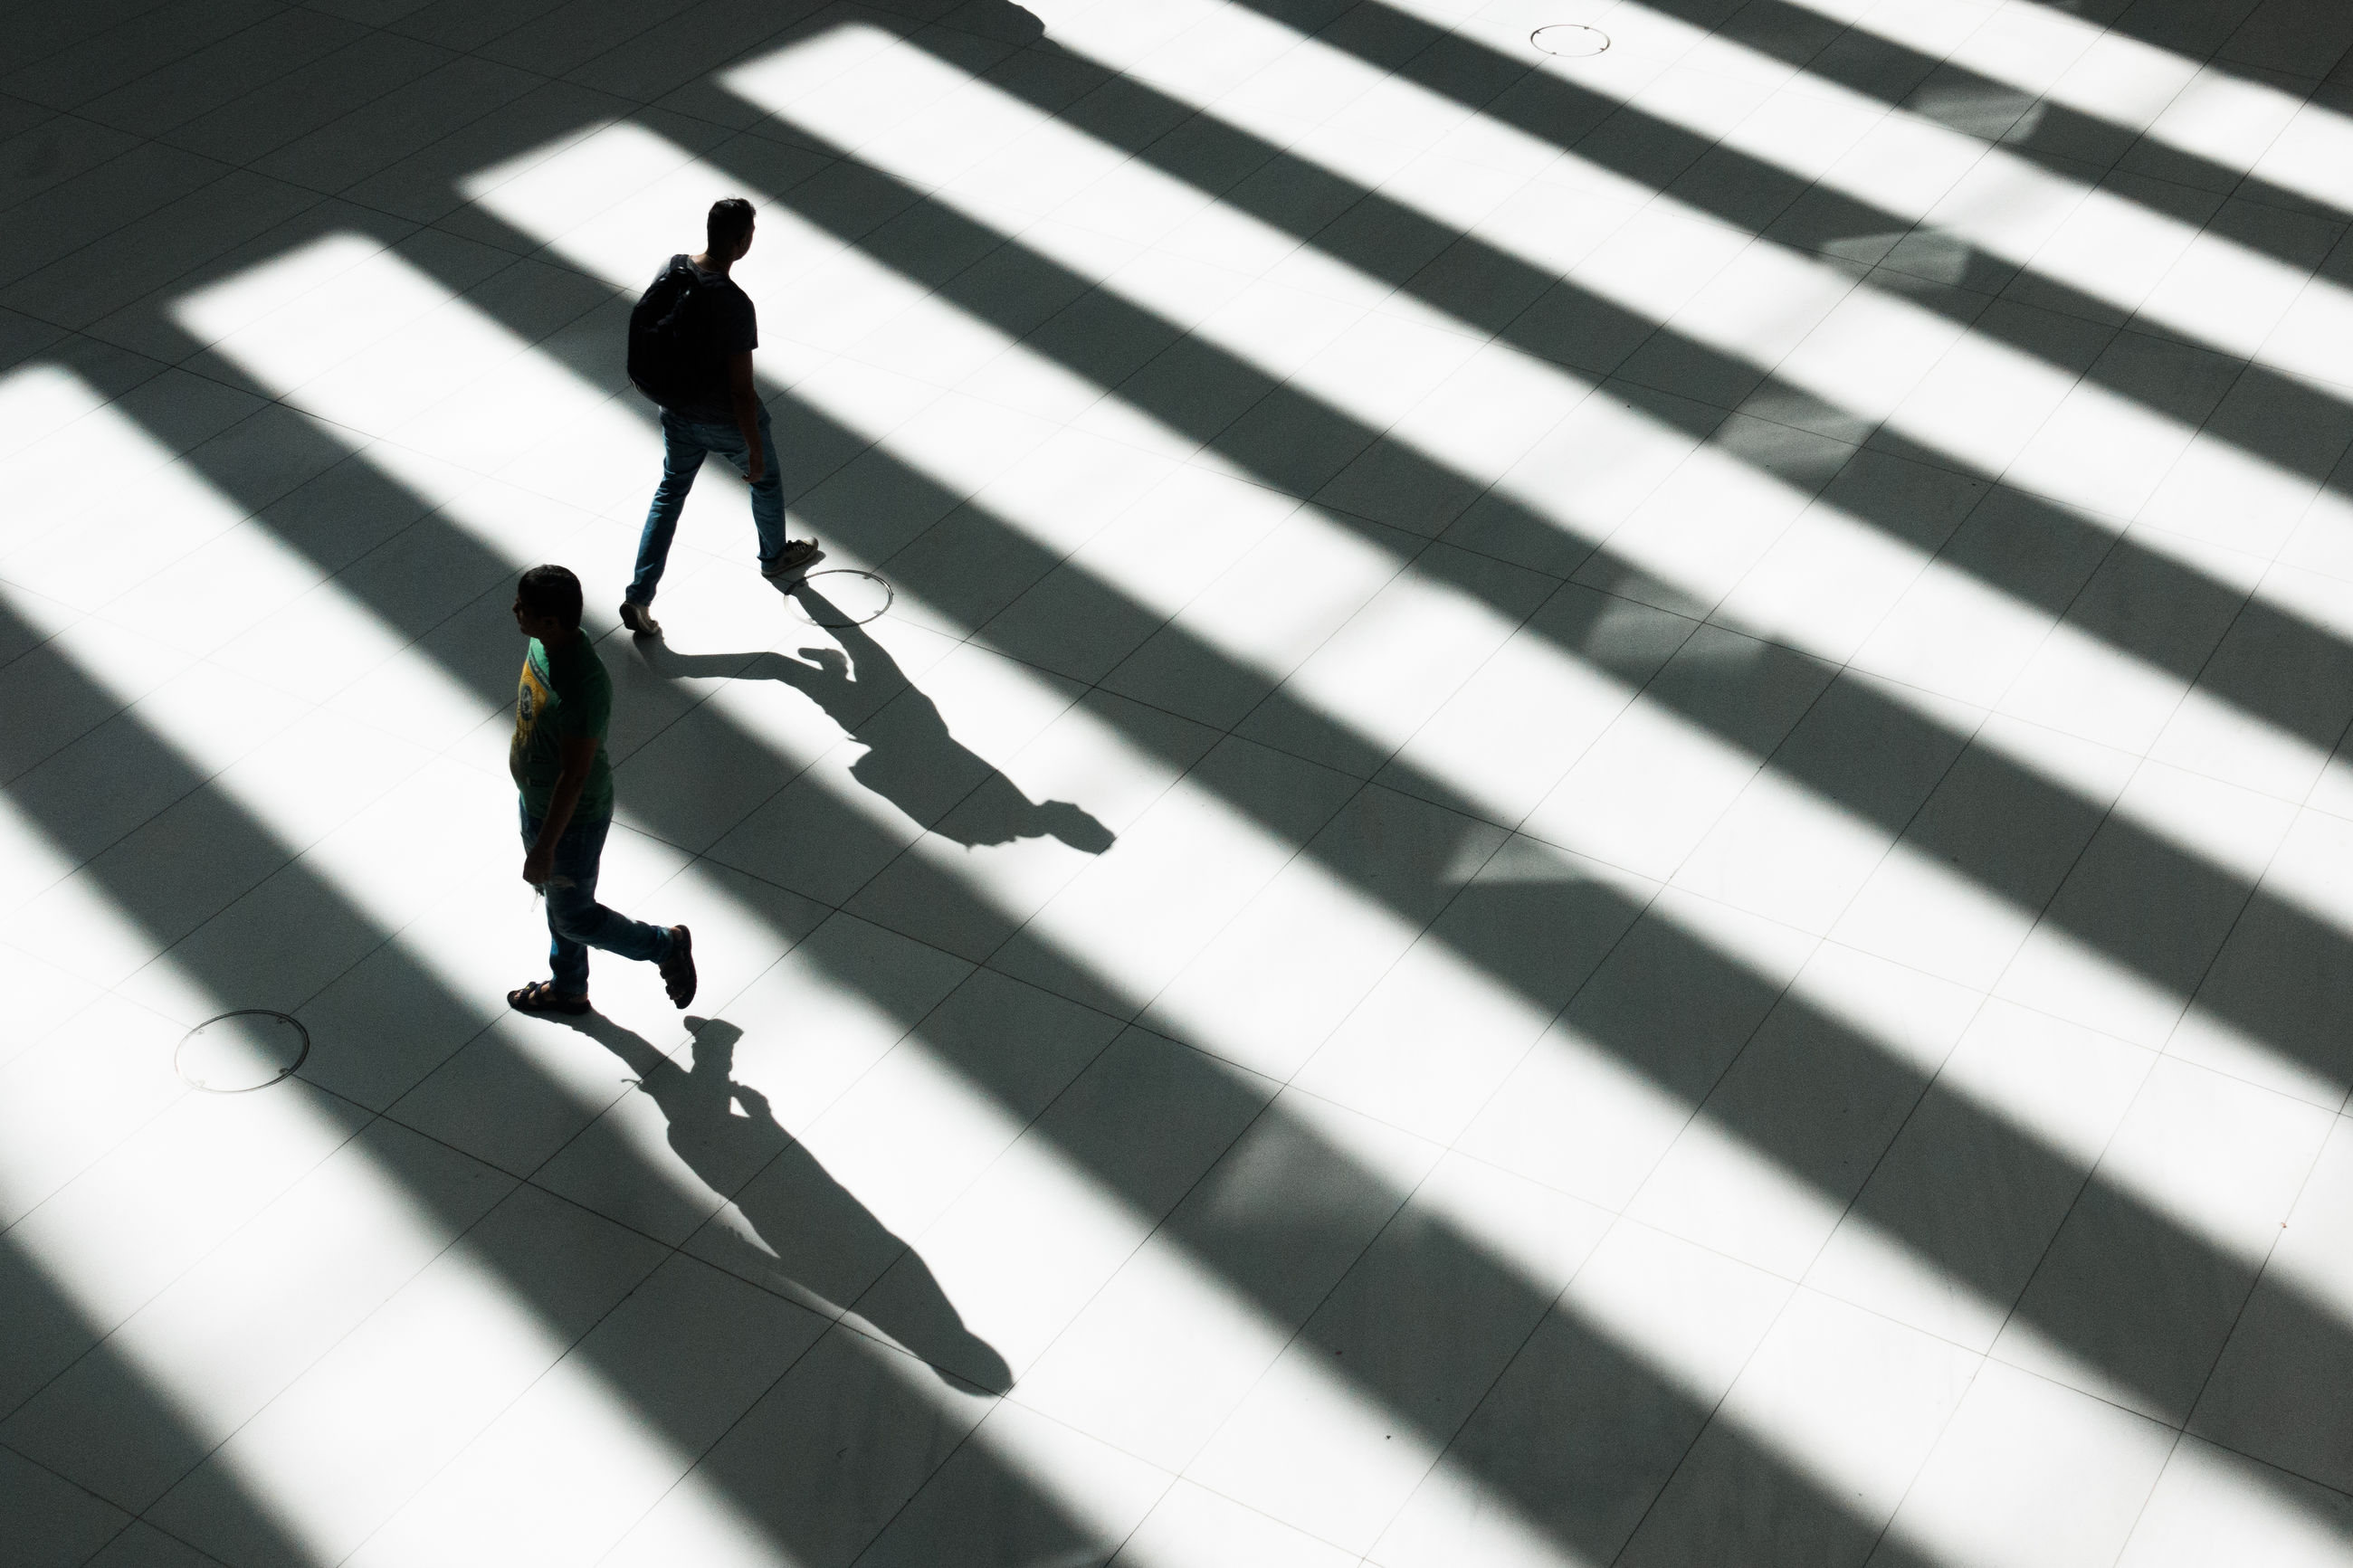 walking, shadow, full length, men, silhouette, two people, real people, day, togetherness, motion, urgency, lifestyles, businessman, women, outdoors, adult, city, people, only men, adults only